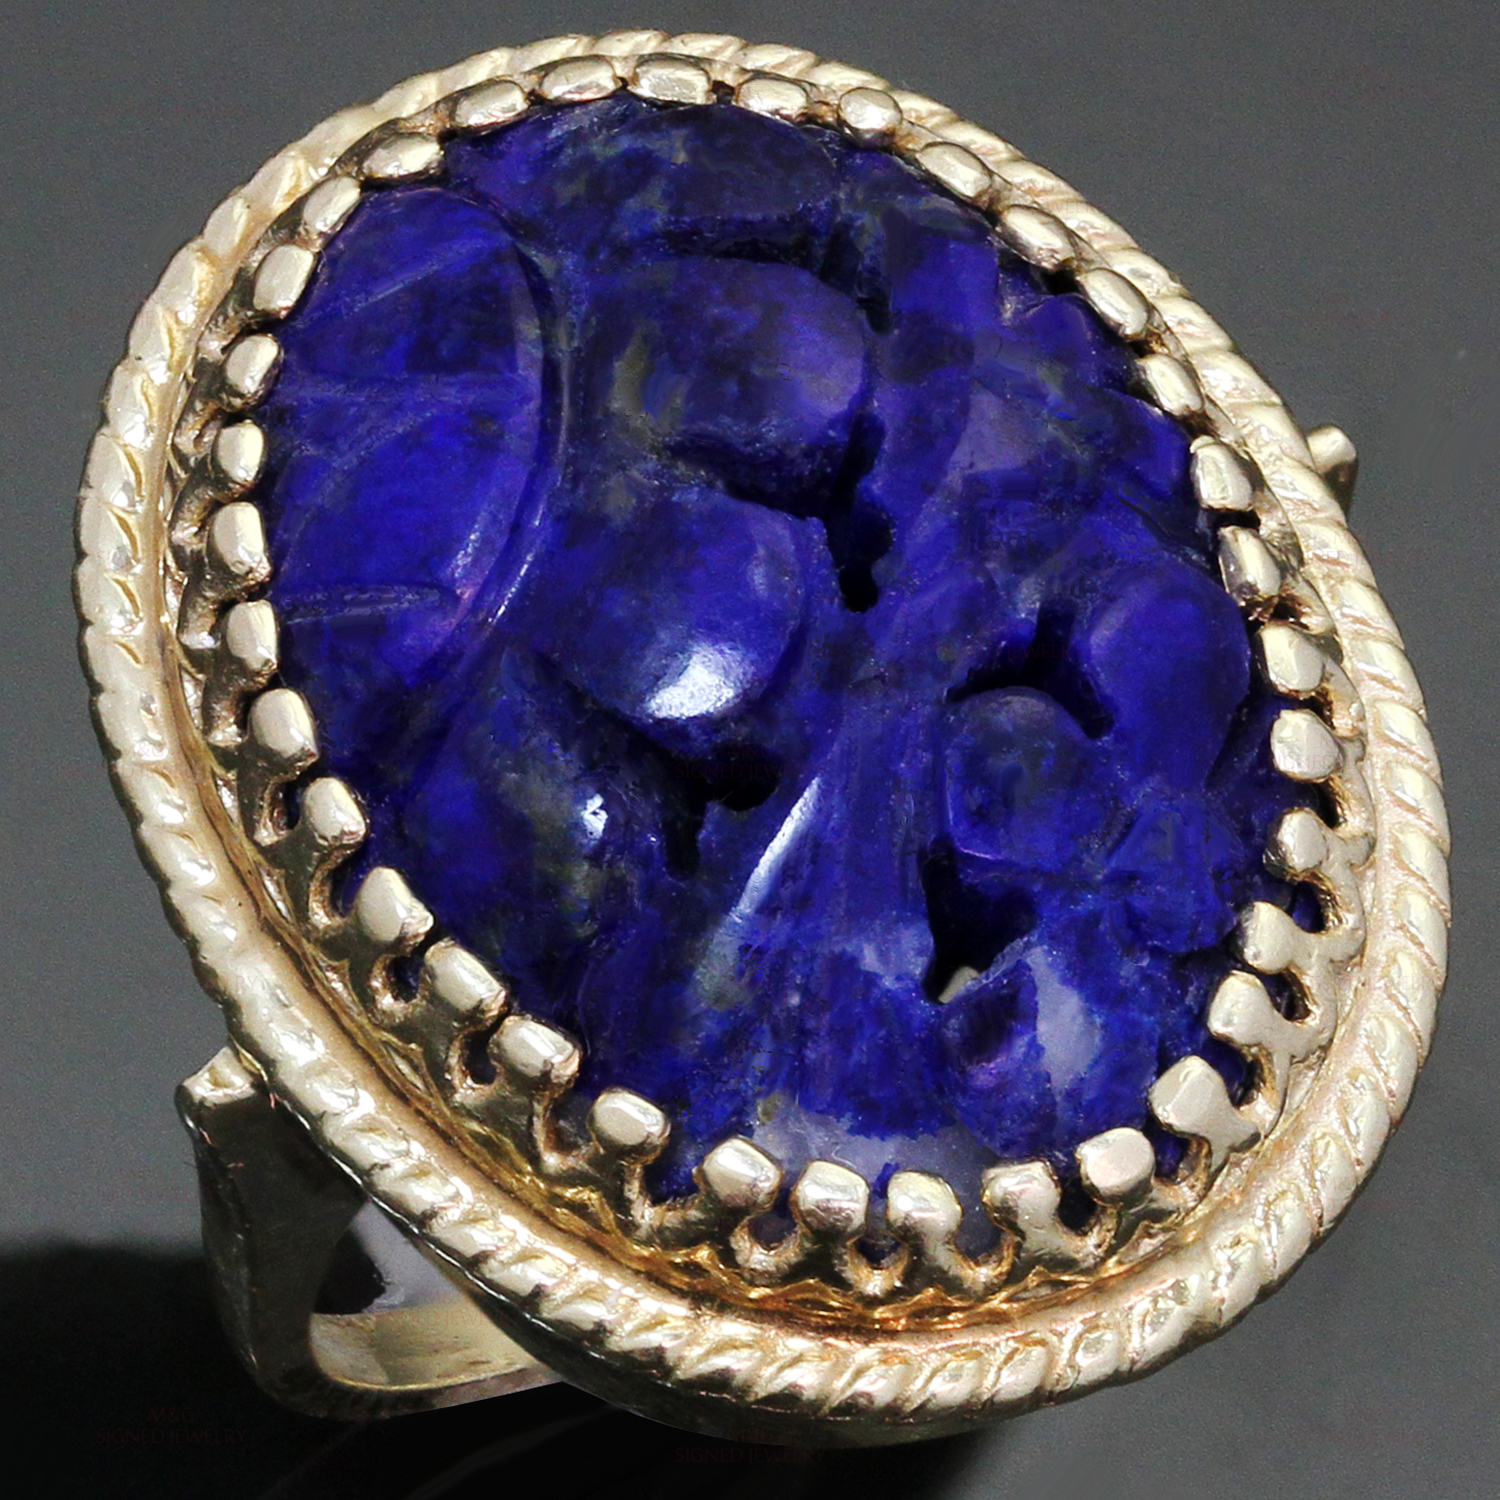 Hand-Carved Natural Lapis Lazuli 14K Yellow Gold Cocktail Ring